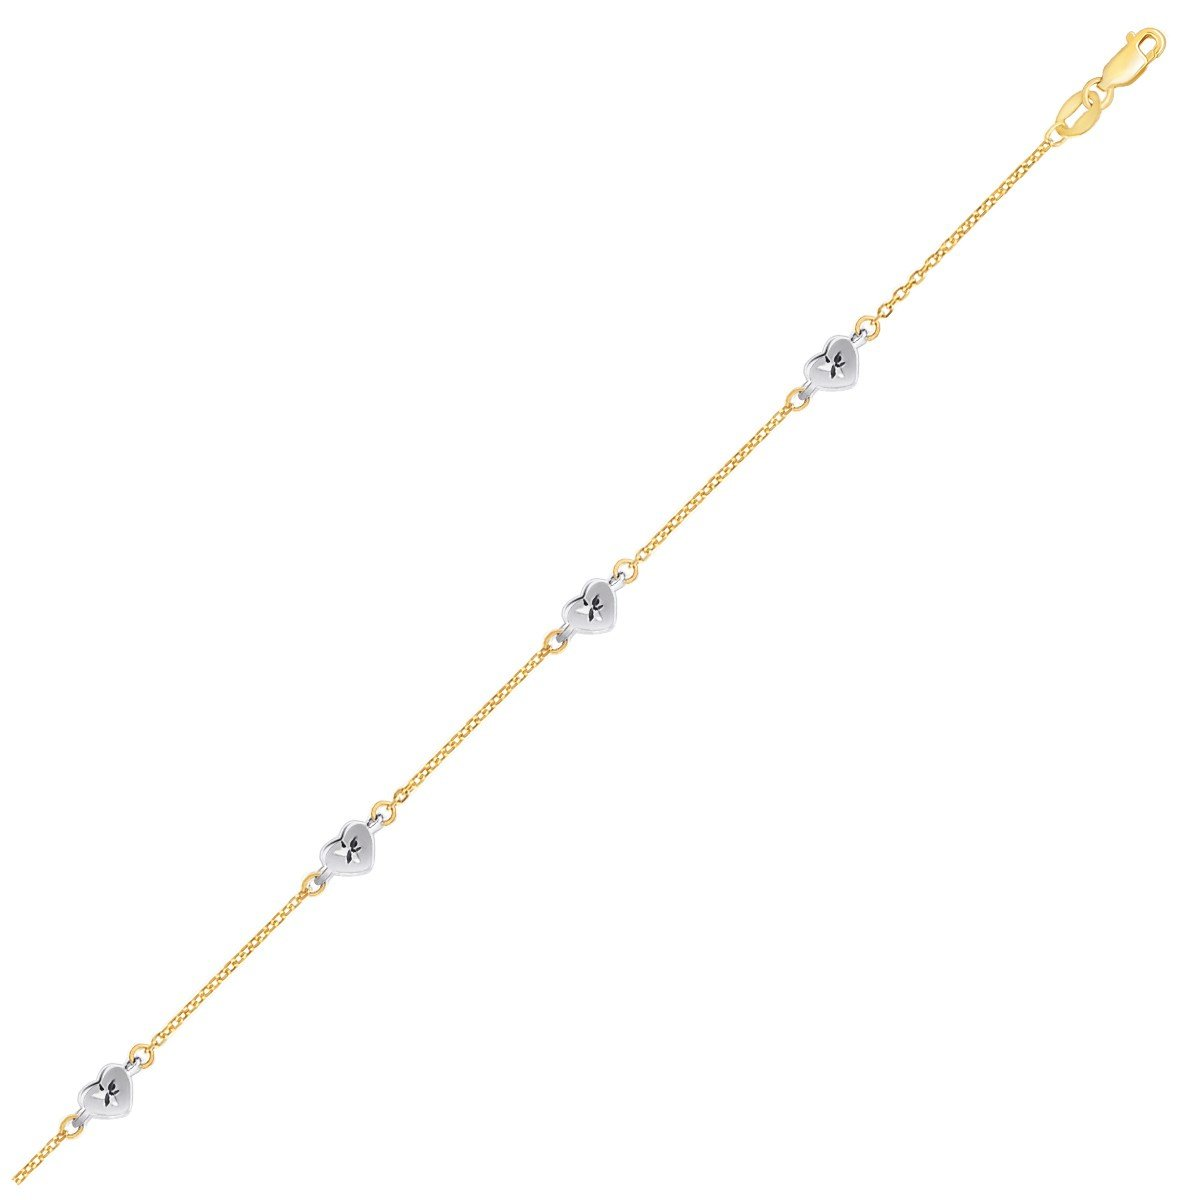 14K Two Tone Gold Anklet with Diamond Cut Heart Style Stations by Diamond Designs